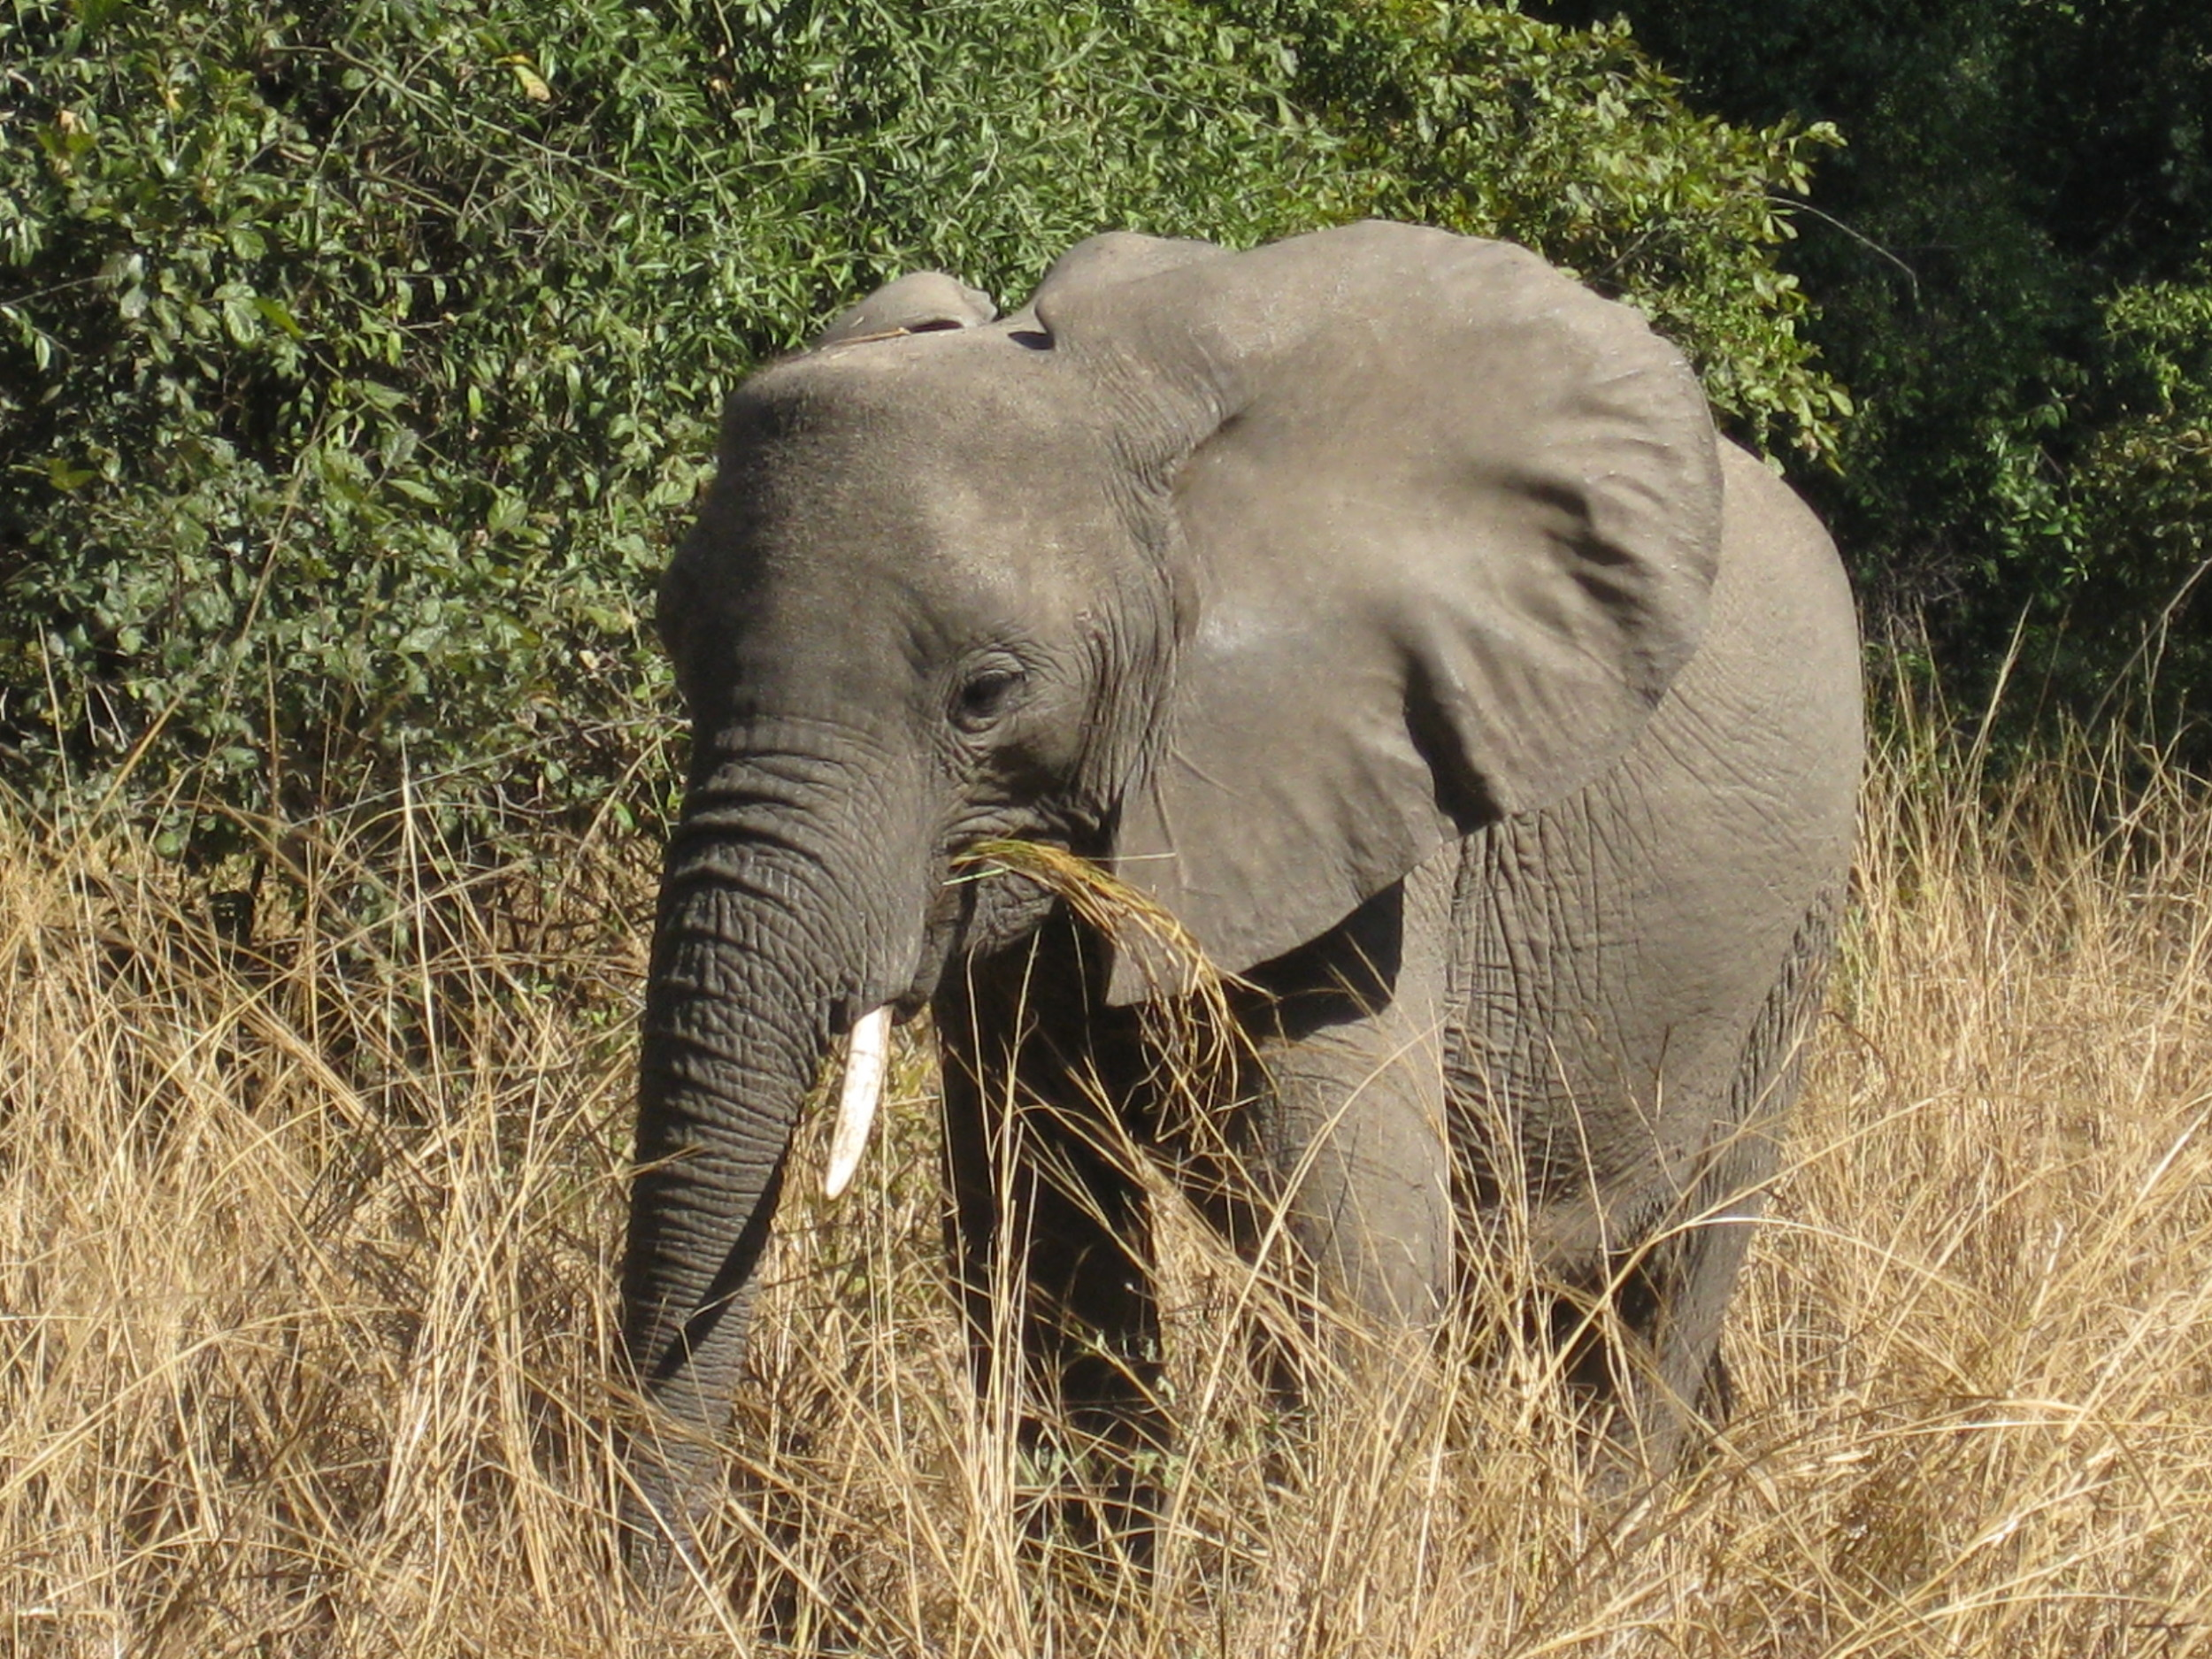 Afternoon snack? One of the many glorious ellies tromping through Zambia's South Luangwa National Park.